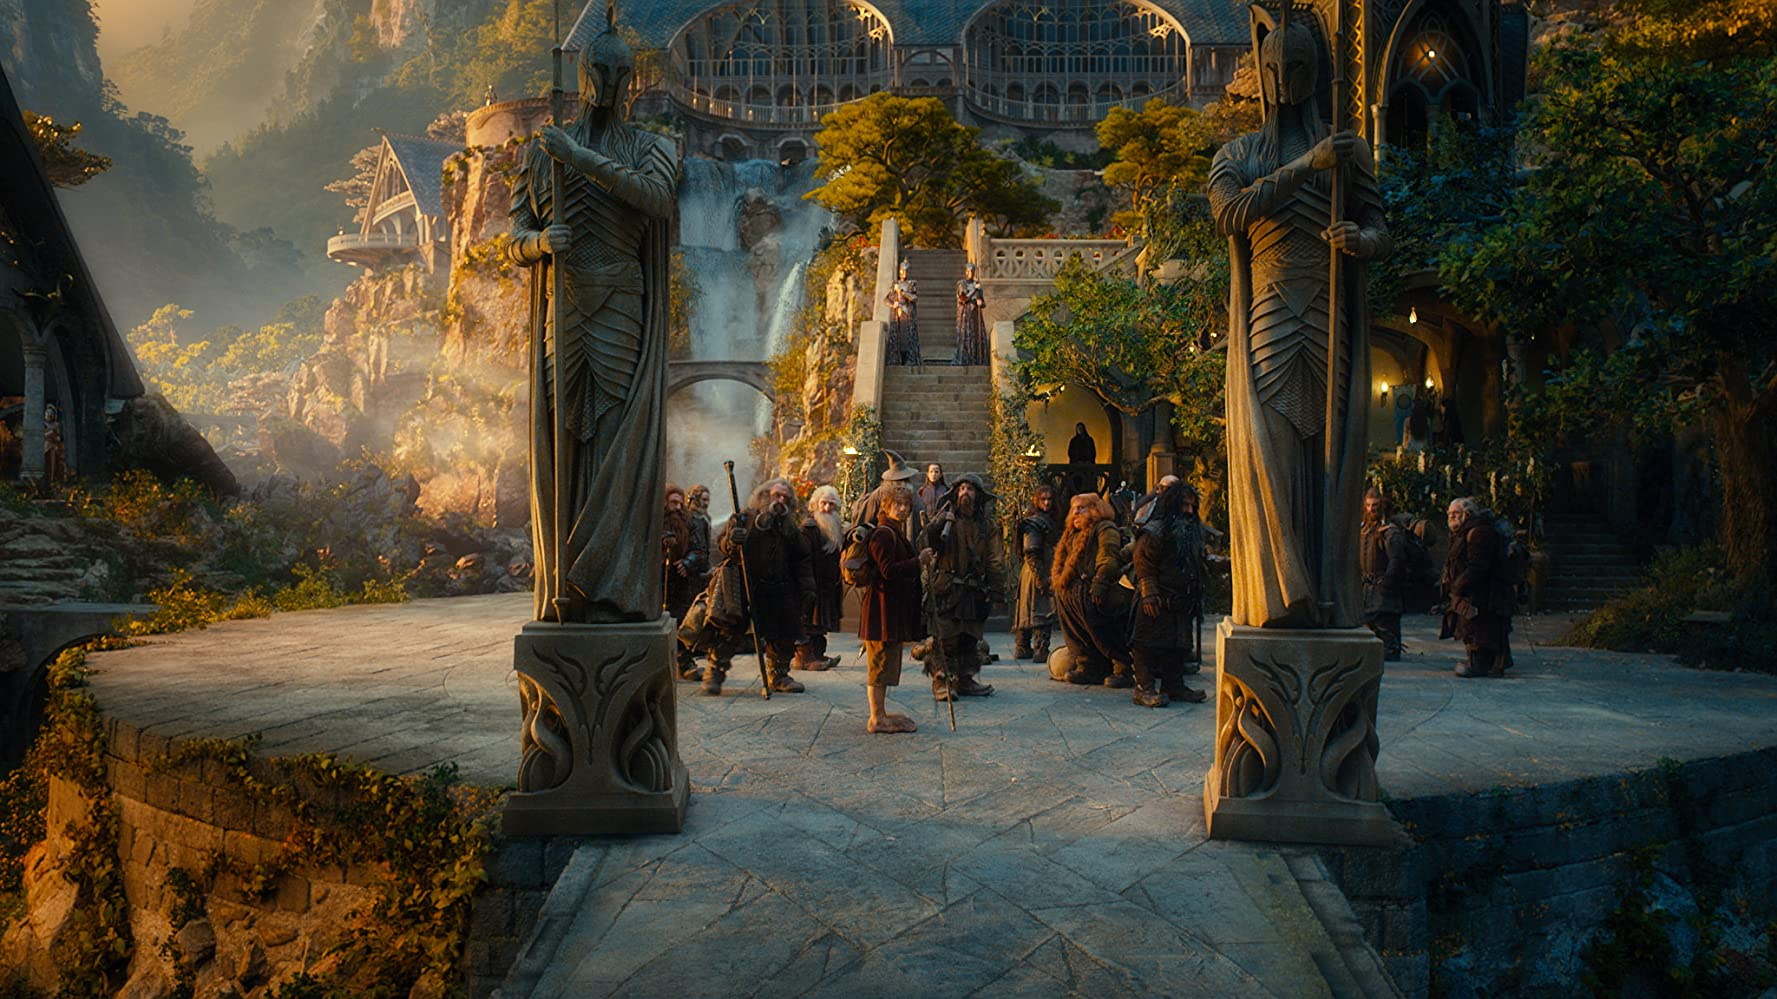 Jed Brophy, John Callen, Martin Freeman, Mark Hadlow, Peter Hambleton, William Kircher, Graham McTavish, James Nesbitt, Dean O'Gorman, Ken Stott, Stephen Hunter, Bret McKenzie, Aidan Turner, and Adam Brown in The Hobbit: An Unexpected Journey (2012)